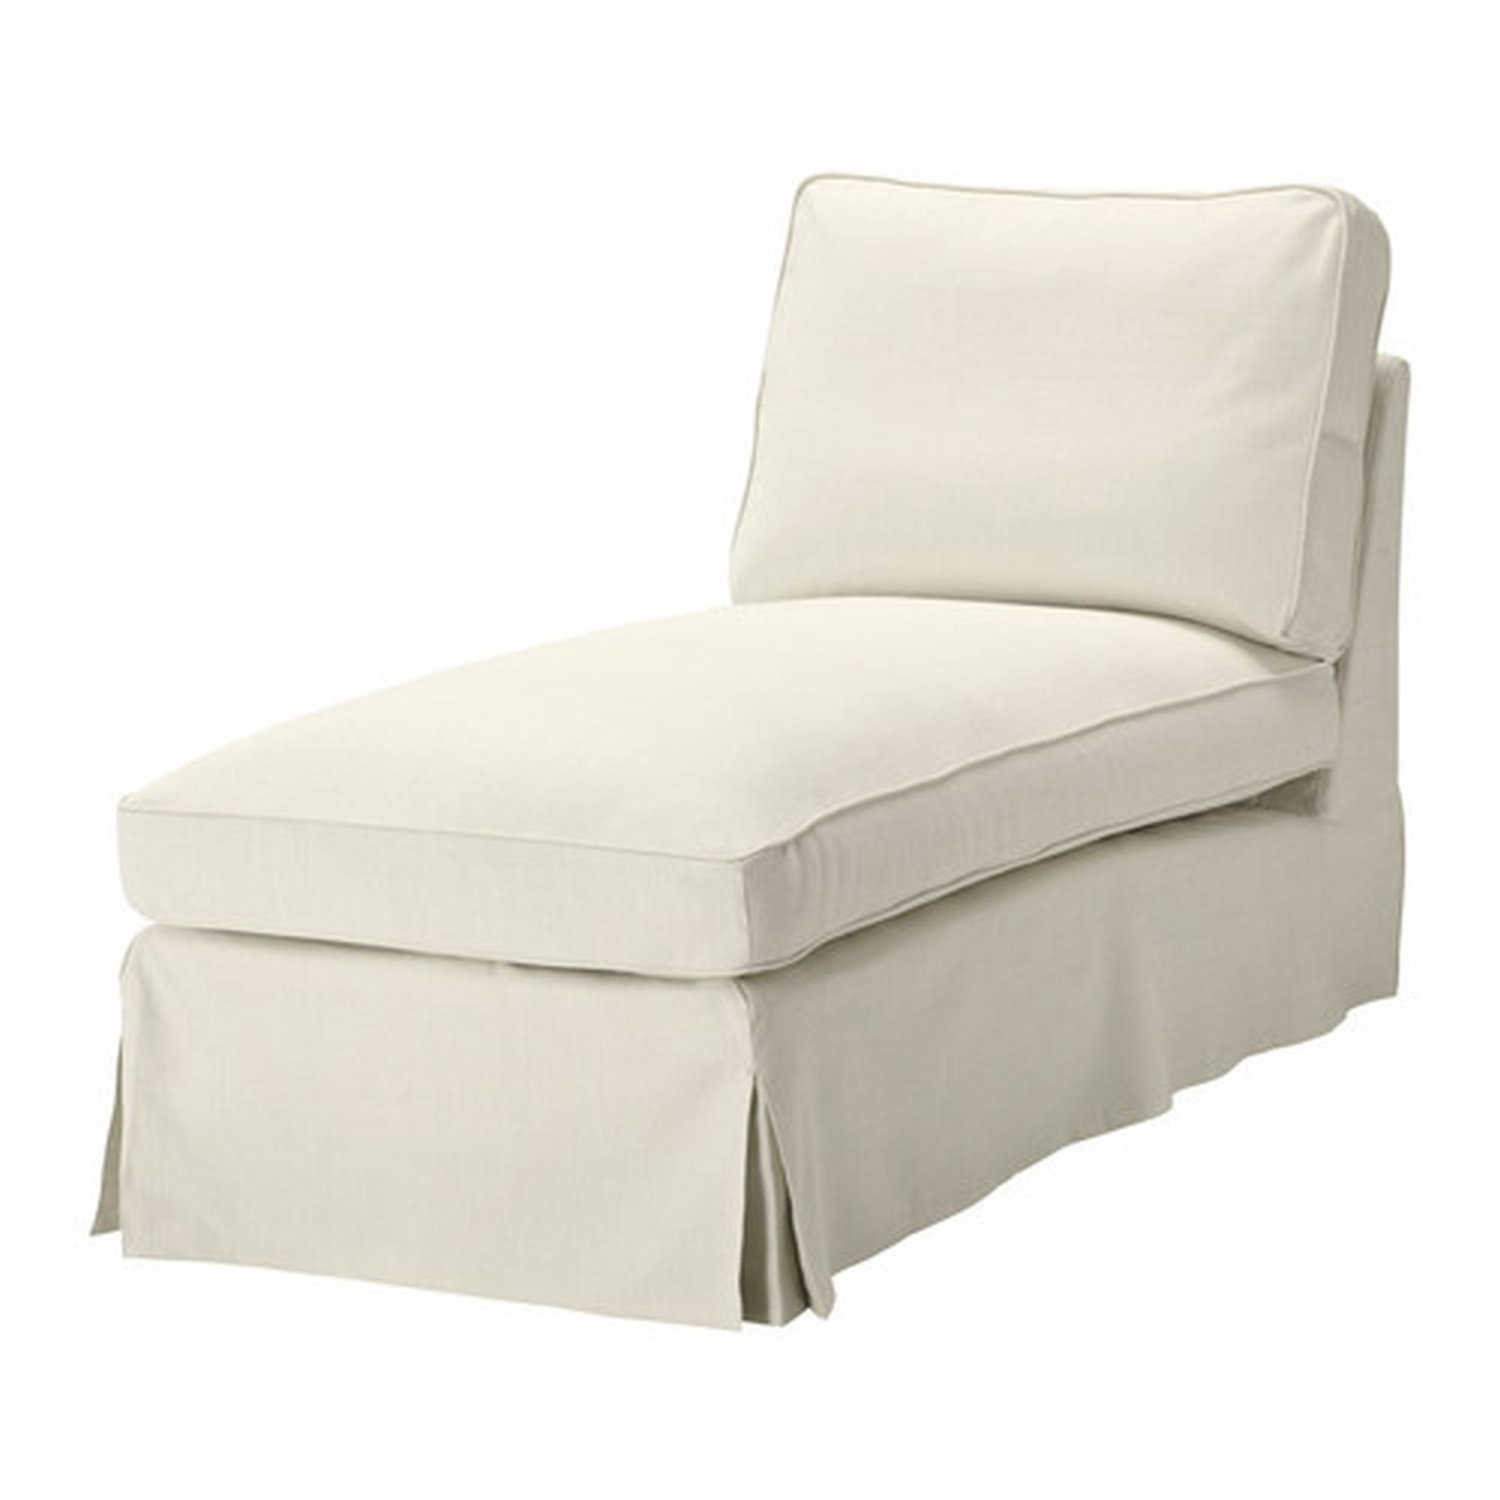 Ikea ektorp free standing chaise longue cover slipcover for Chaise longue or chaise lounge